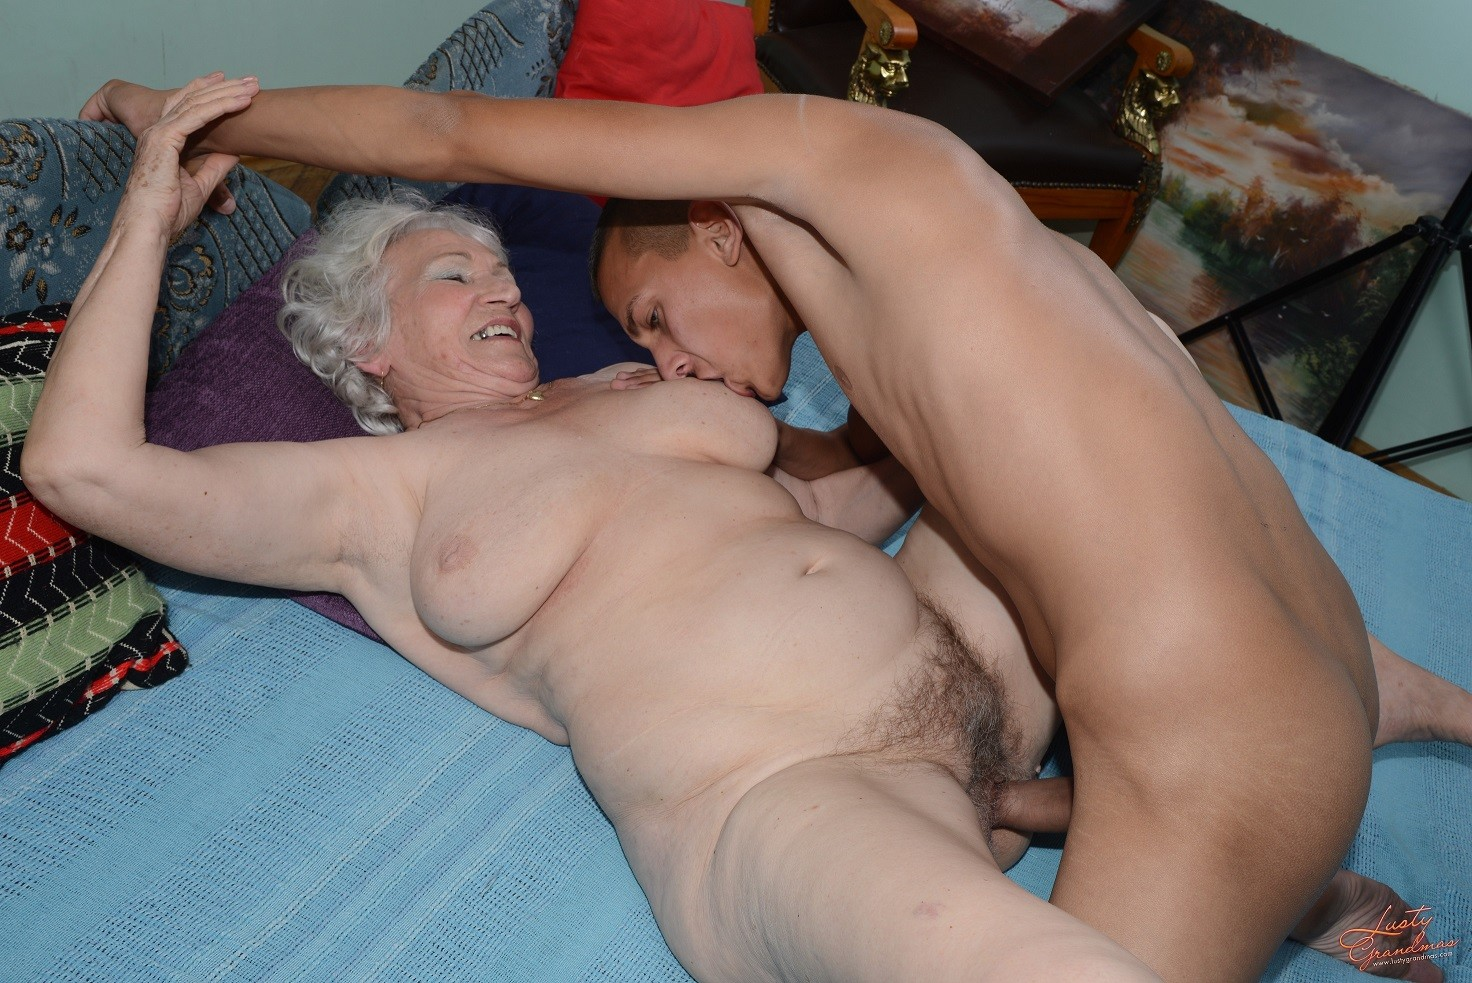 For granny porn videos